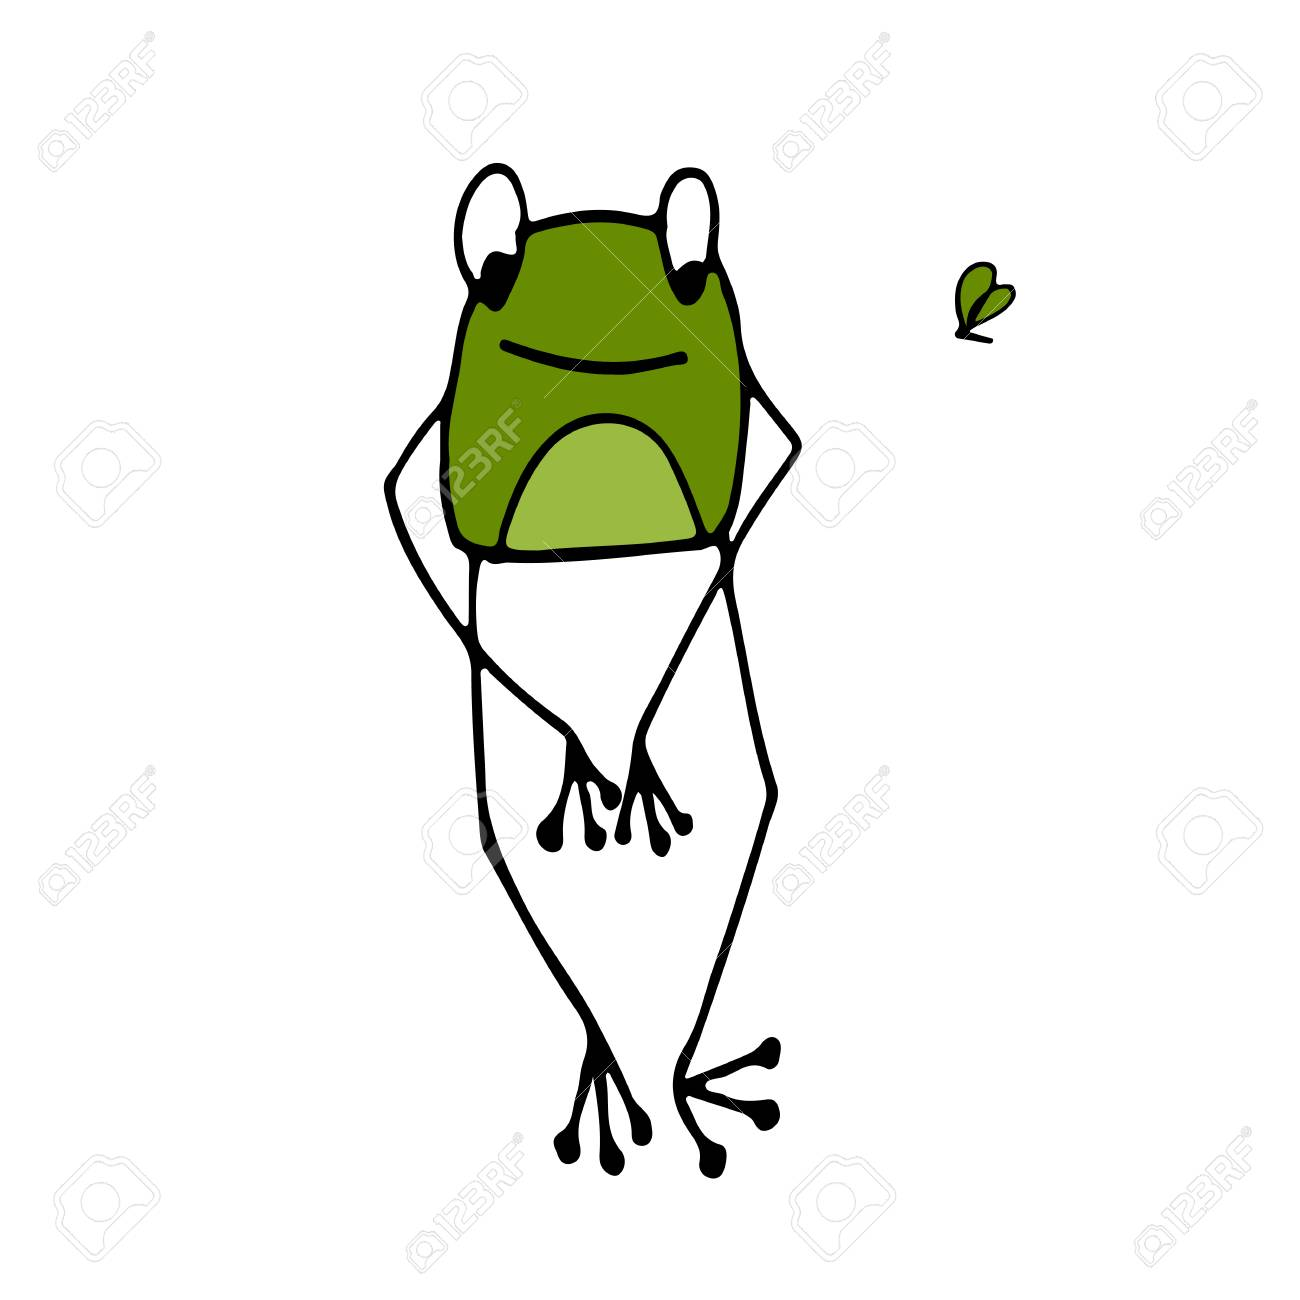 funny frog sketch for your design vector illustration royalty free rh 123rf com Frog Prince Cute Frogs